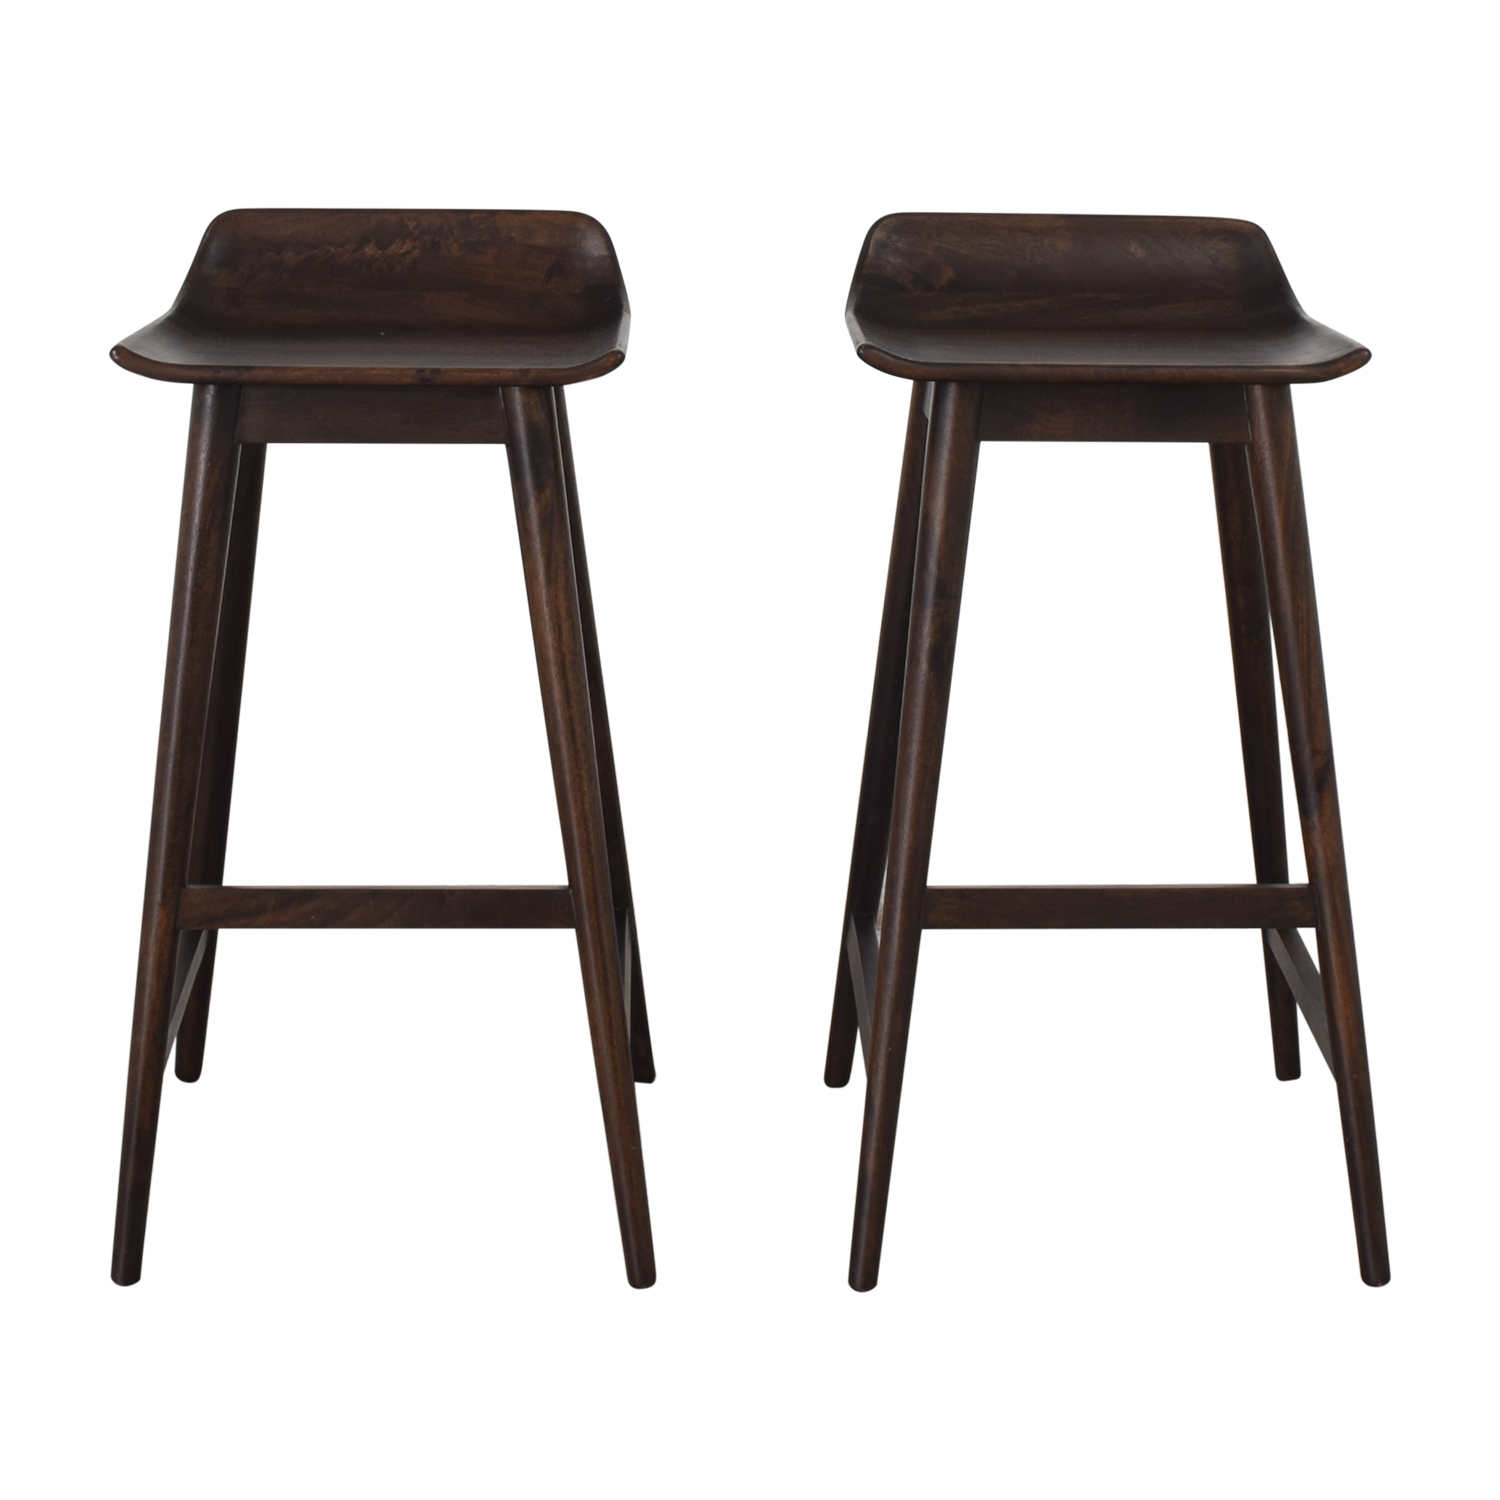 shop CB2 Wainscott Bar Stools CB2 Chairs